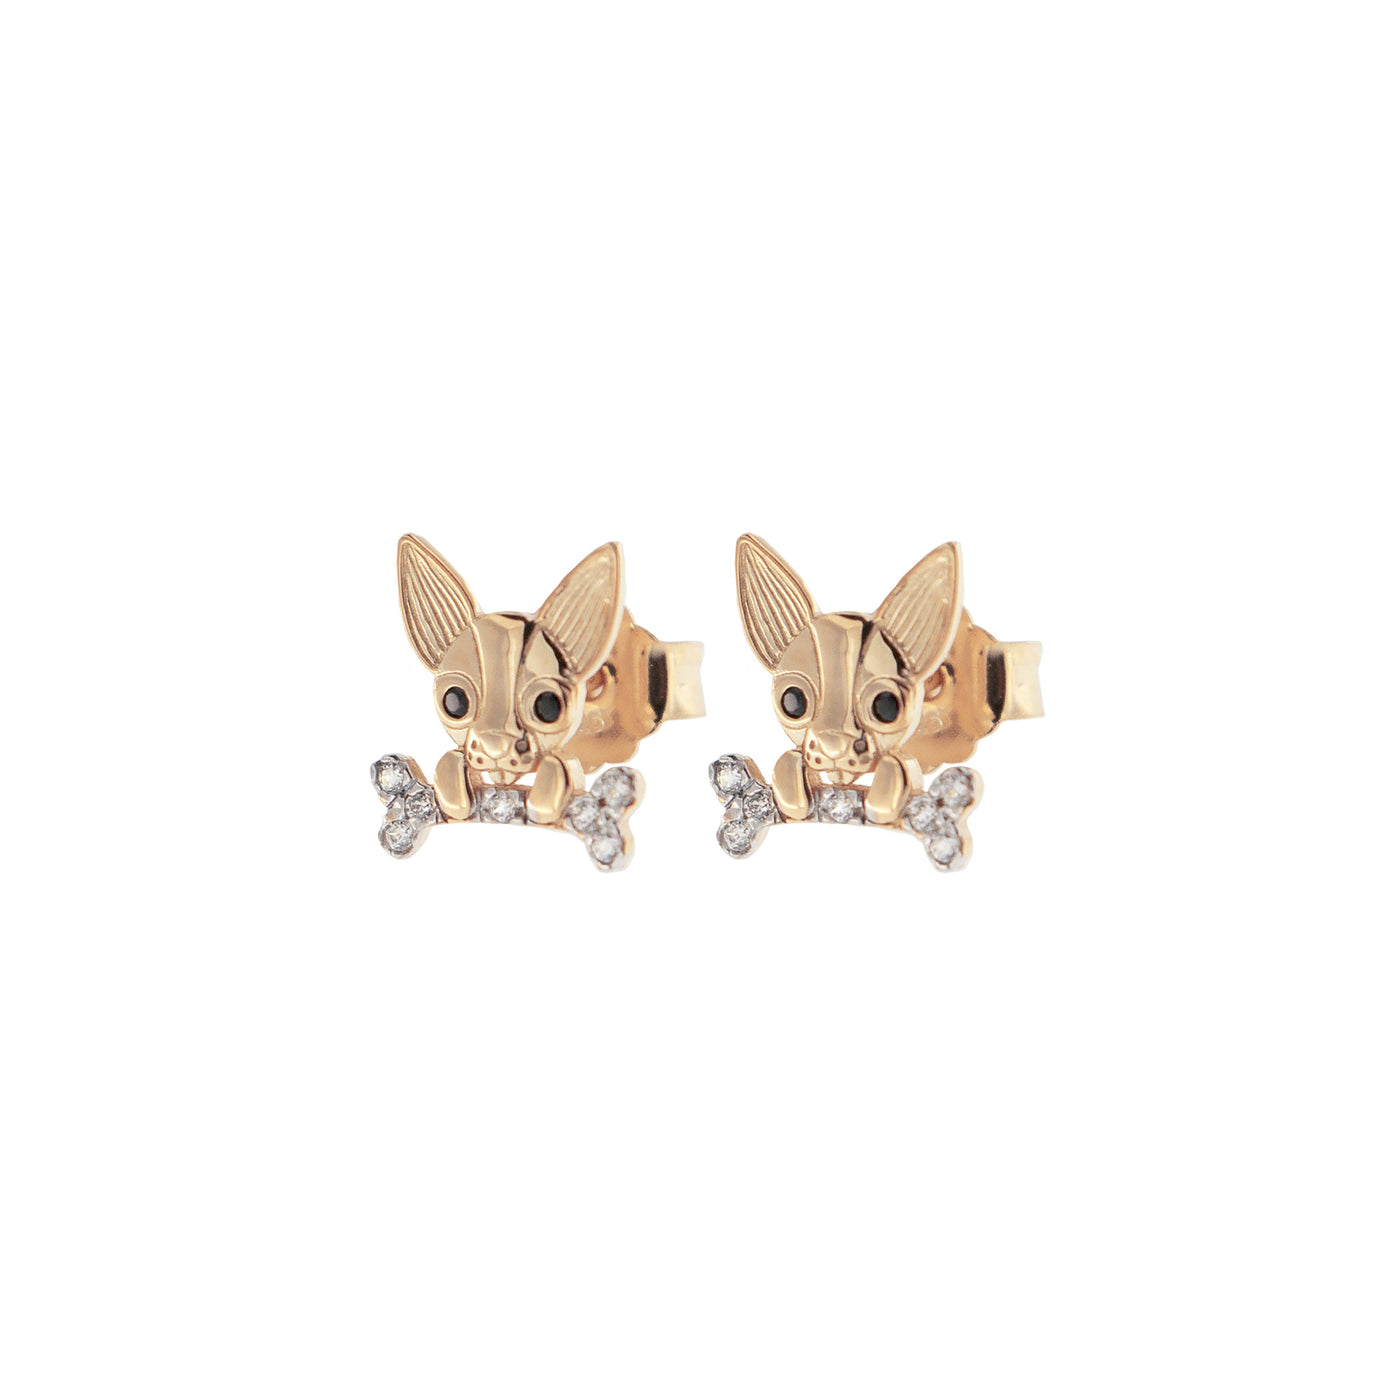 Earrings - Zirconia Earrings With Chihuahua  - 1 | Rue des Mille